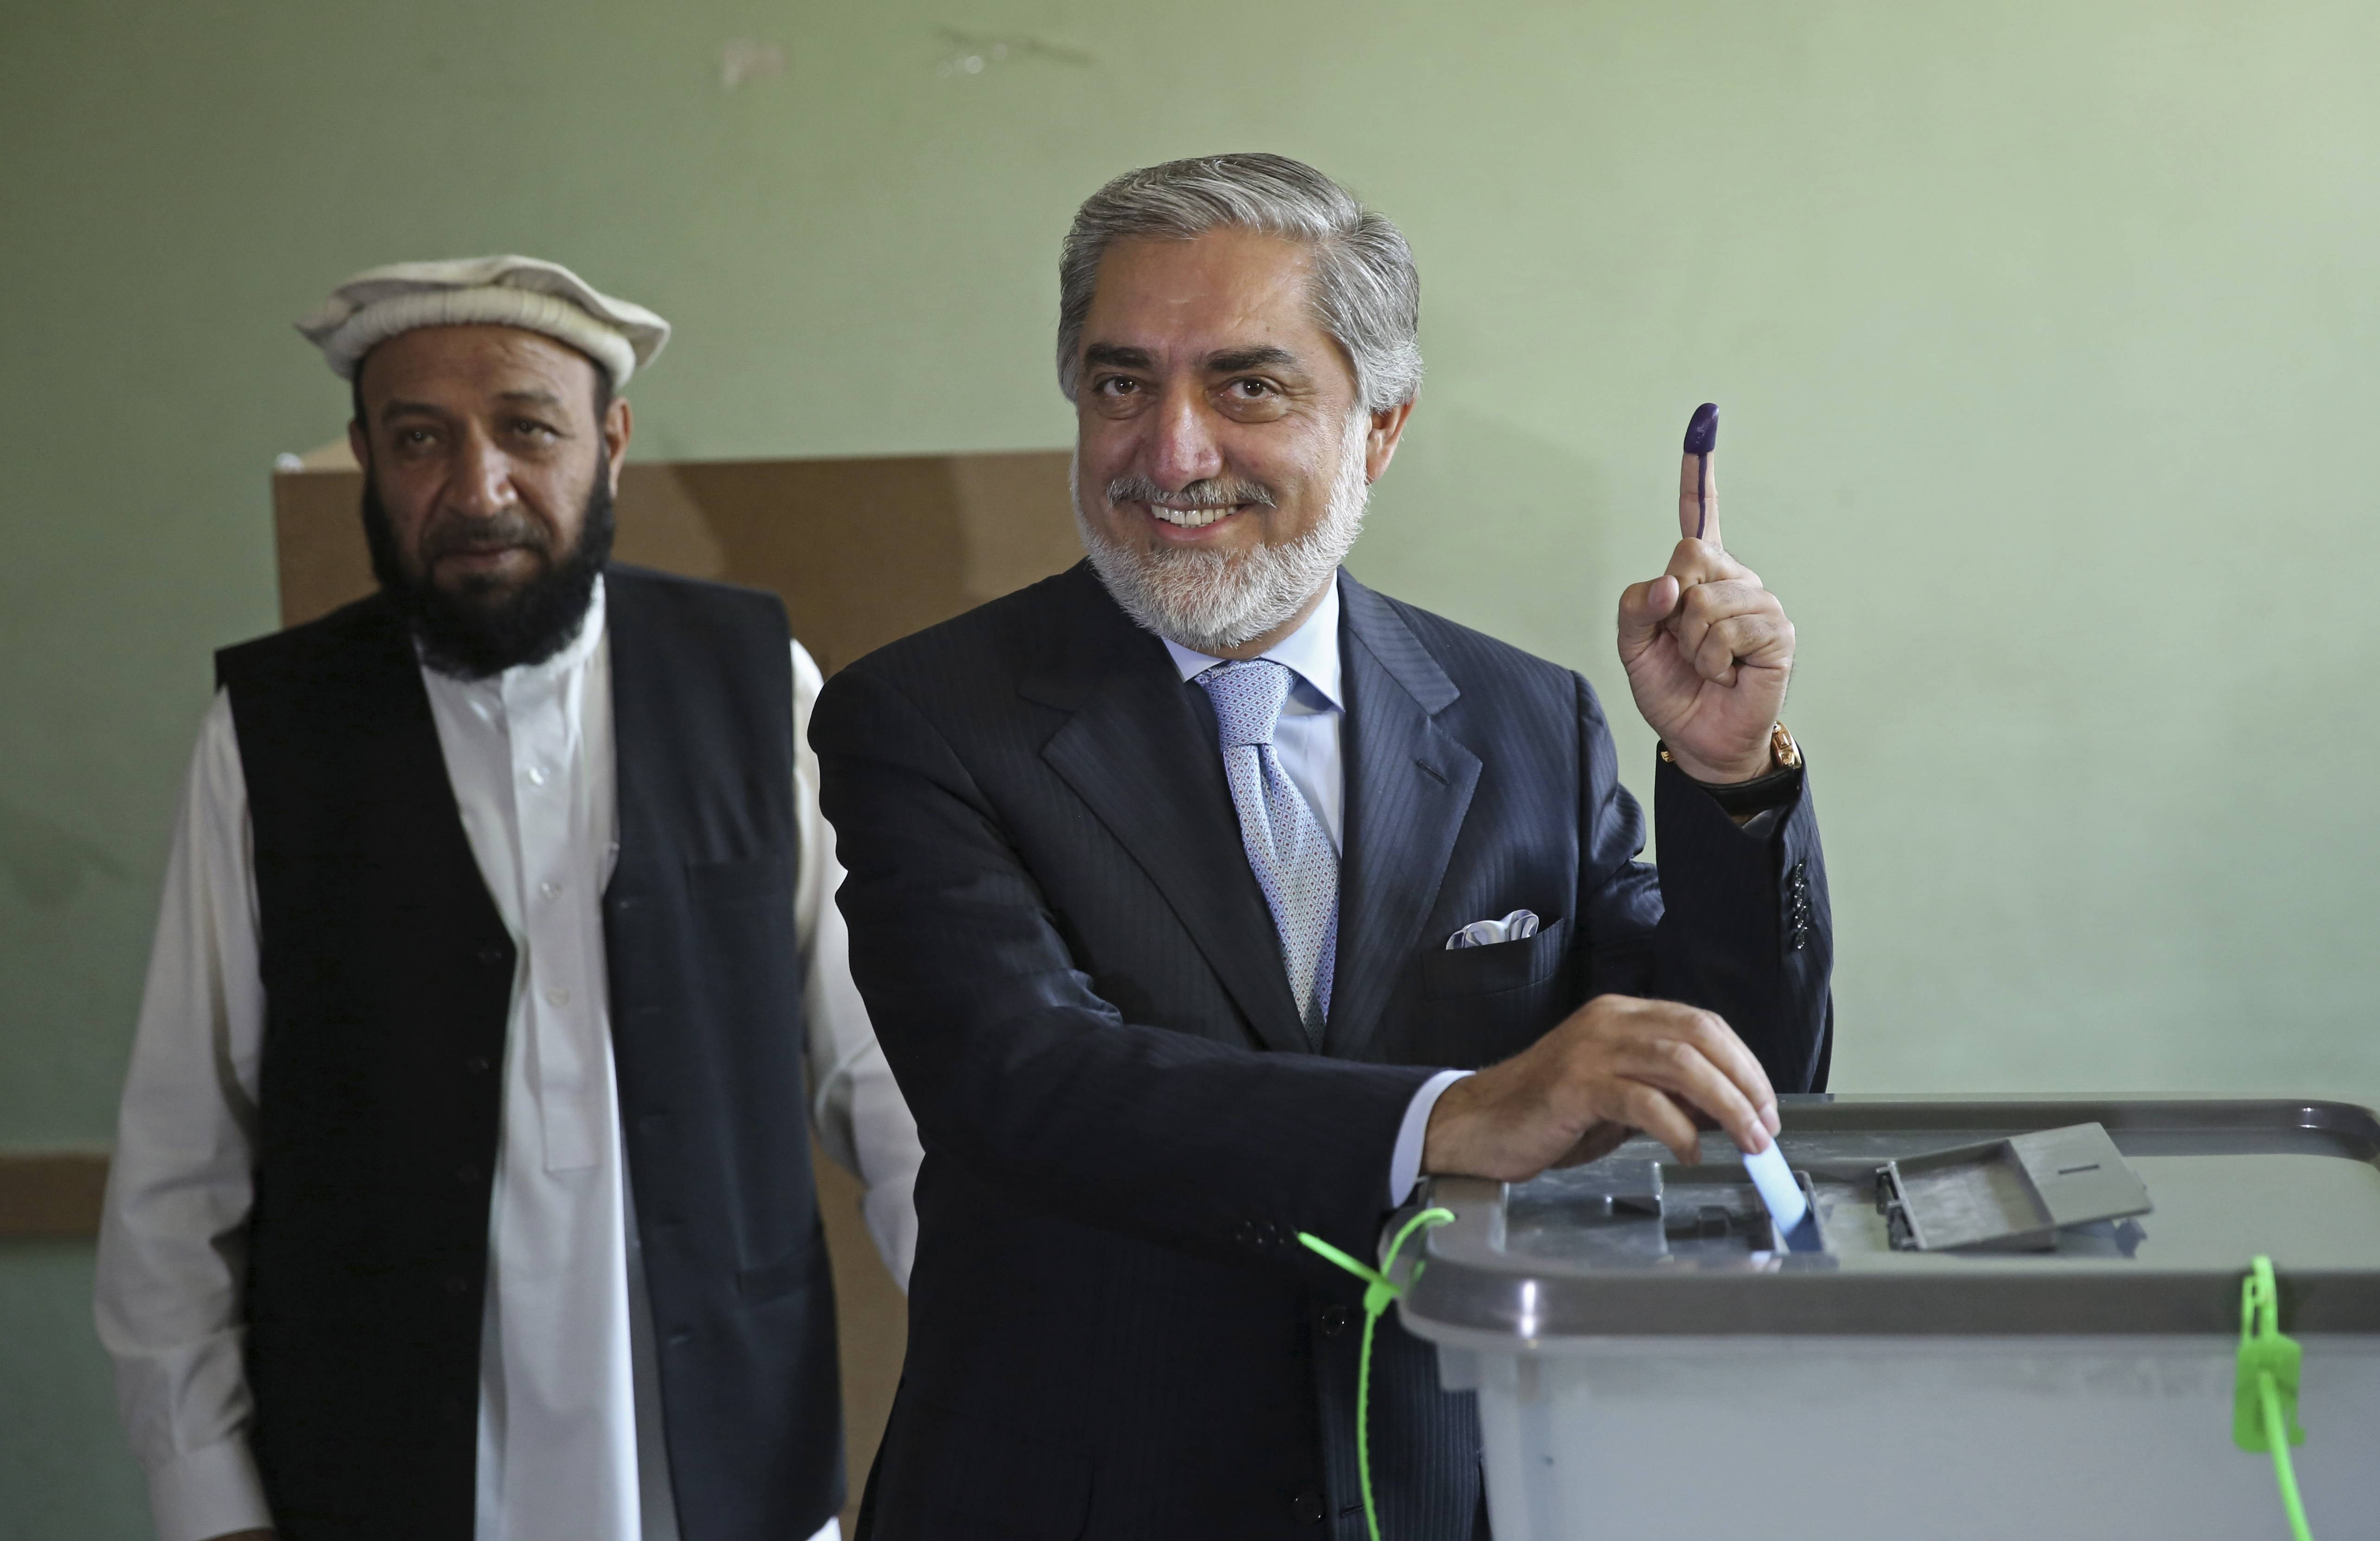 Afghanistan's presidential candidate Abdullah Abdullah, right, poses for photos Saturday before he casts his vote as his vice president candidate, Mahoammad Khan, left, waits at a pooling station in Kabul, Afghanistan.